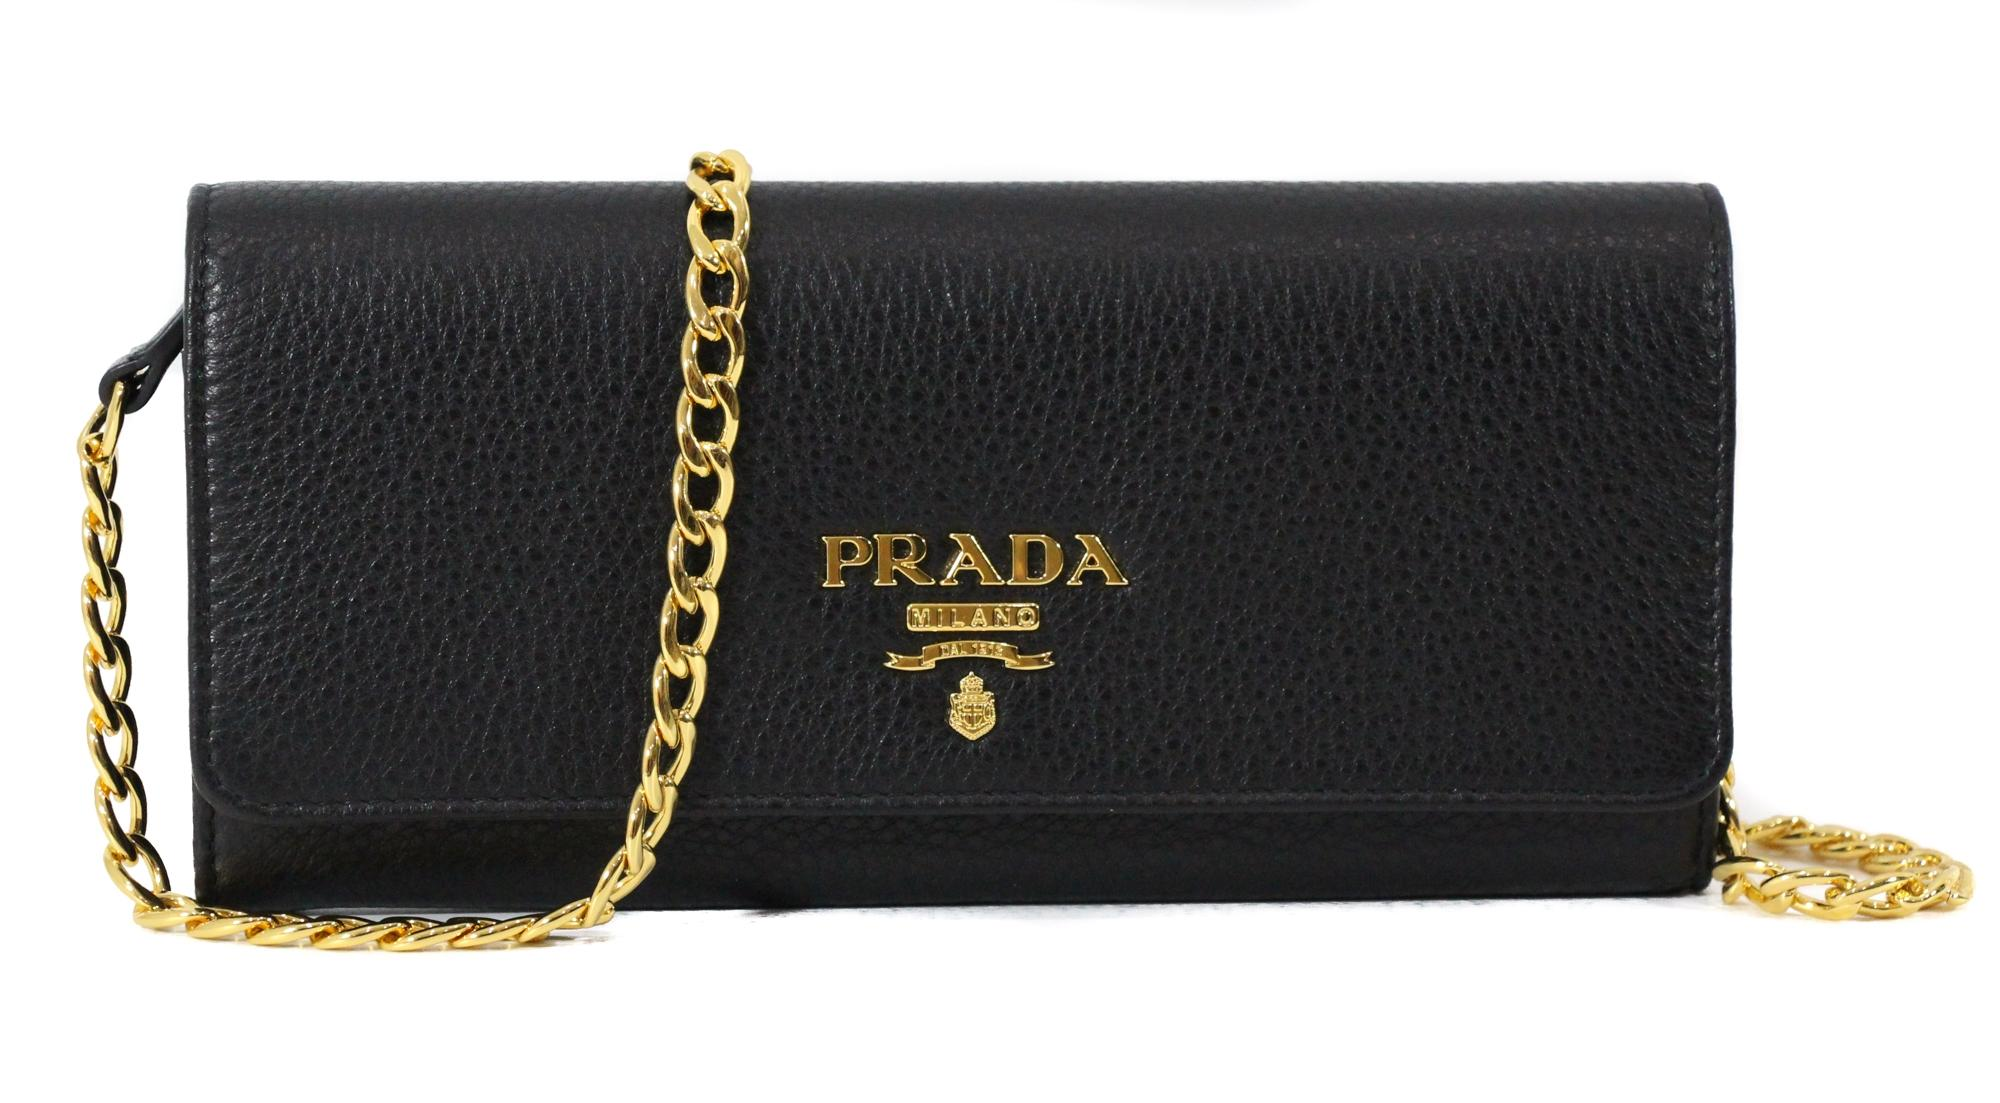 64ddb2bdb8e3 ... australia prada black bags accessories more up to 70 off at tradesy  bc04c 267fd